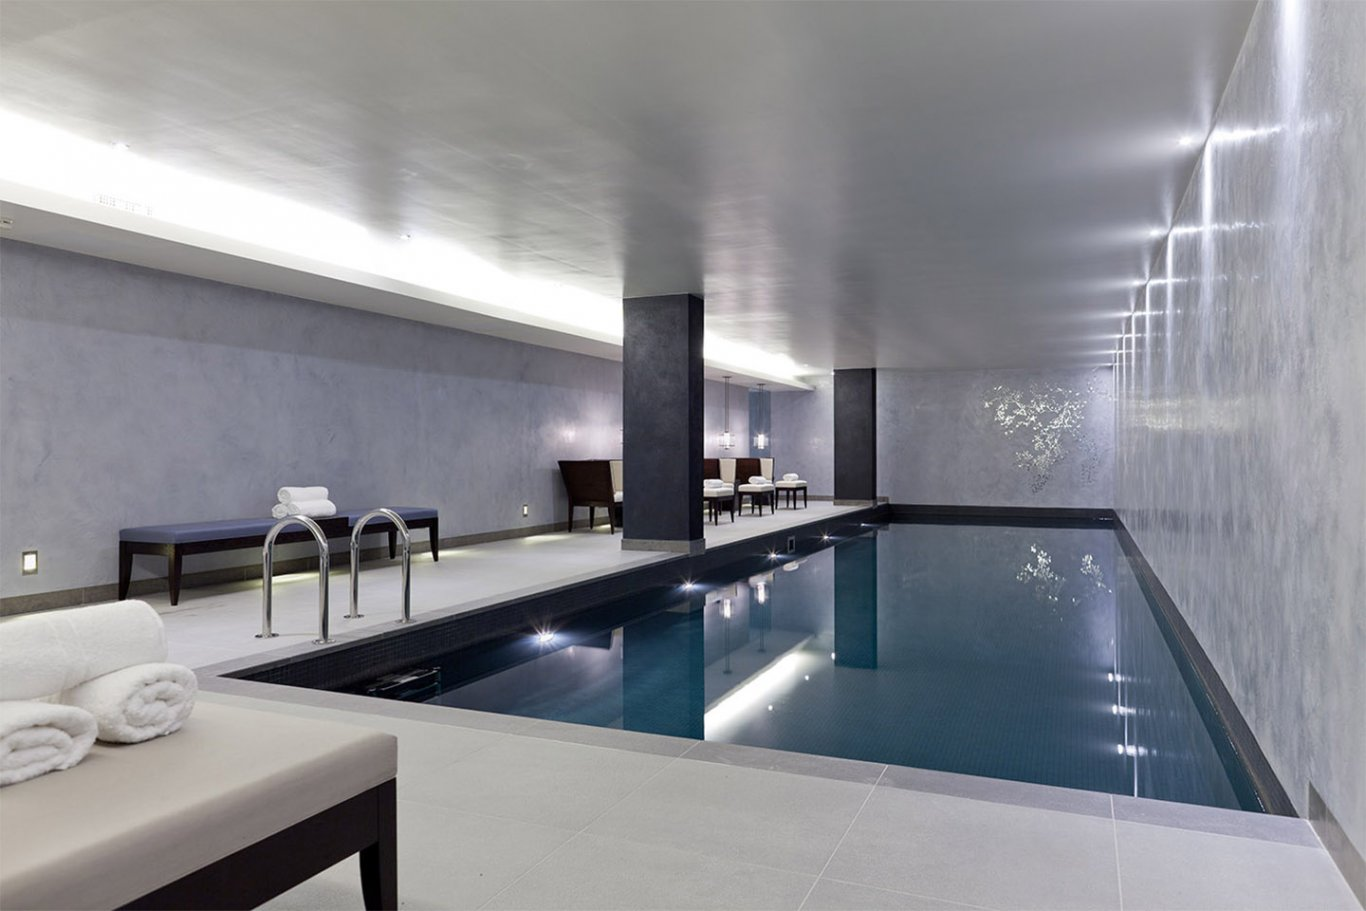 Basement conversion specialists in london cool basements for Basement swimming pool ideas